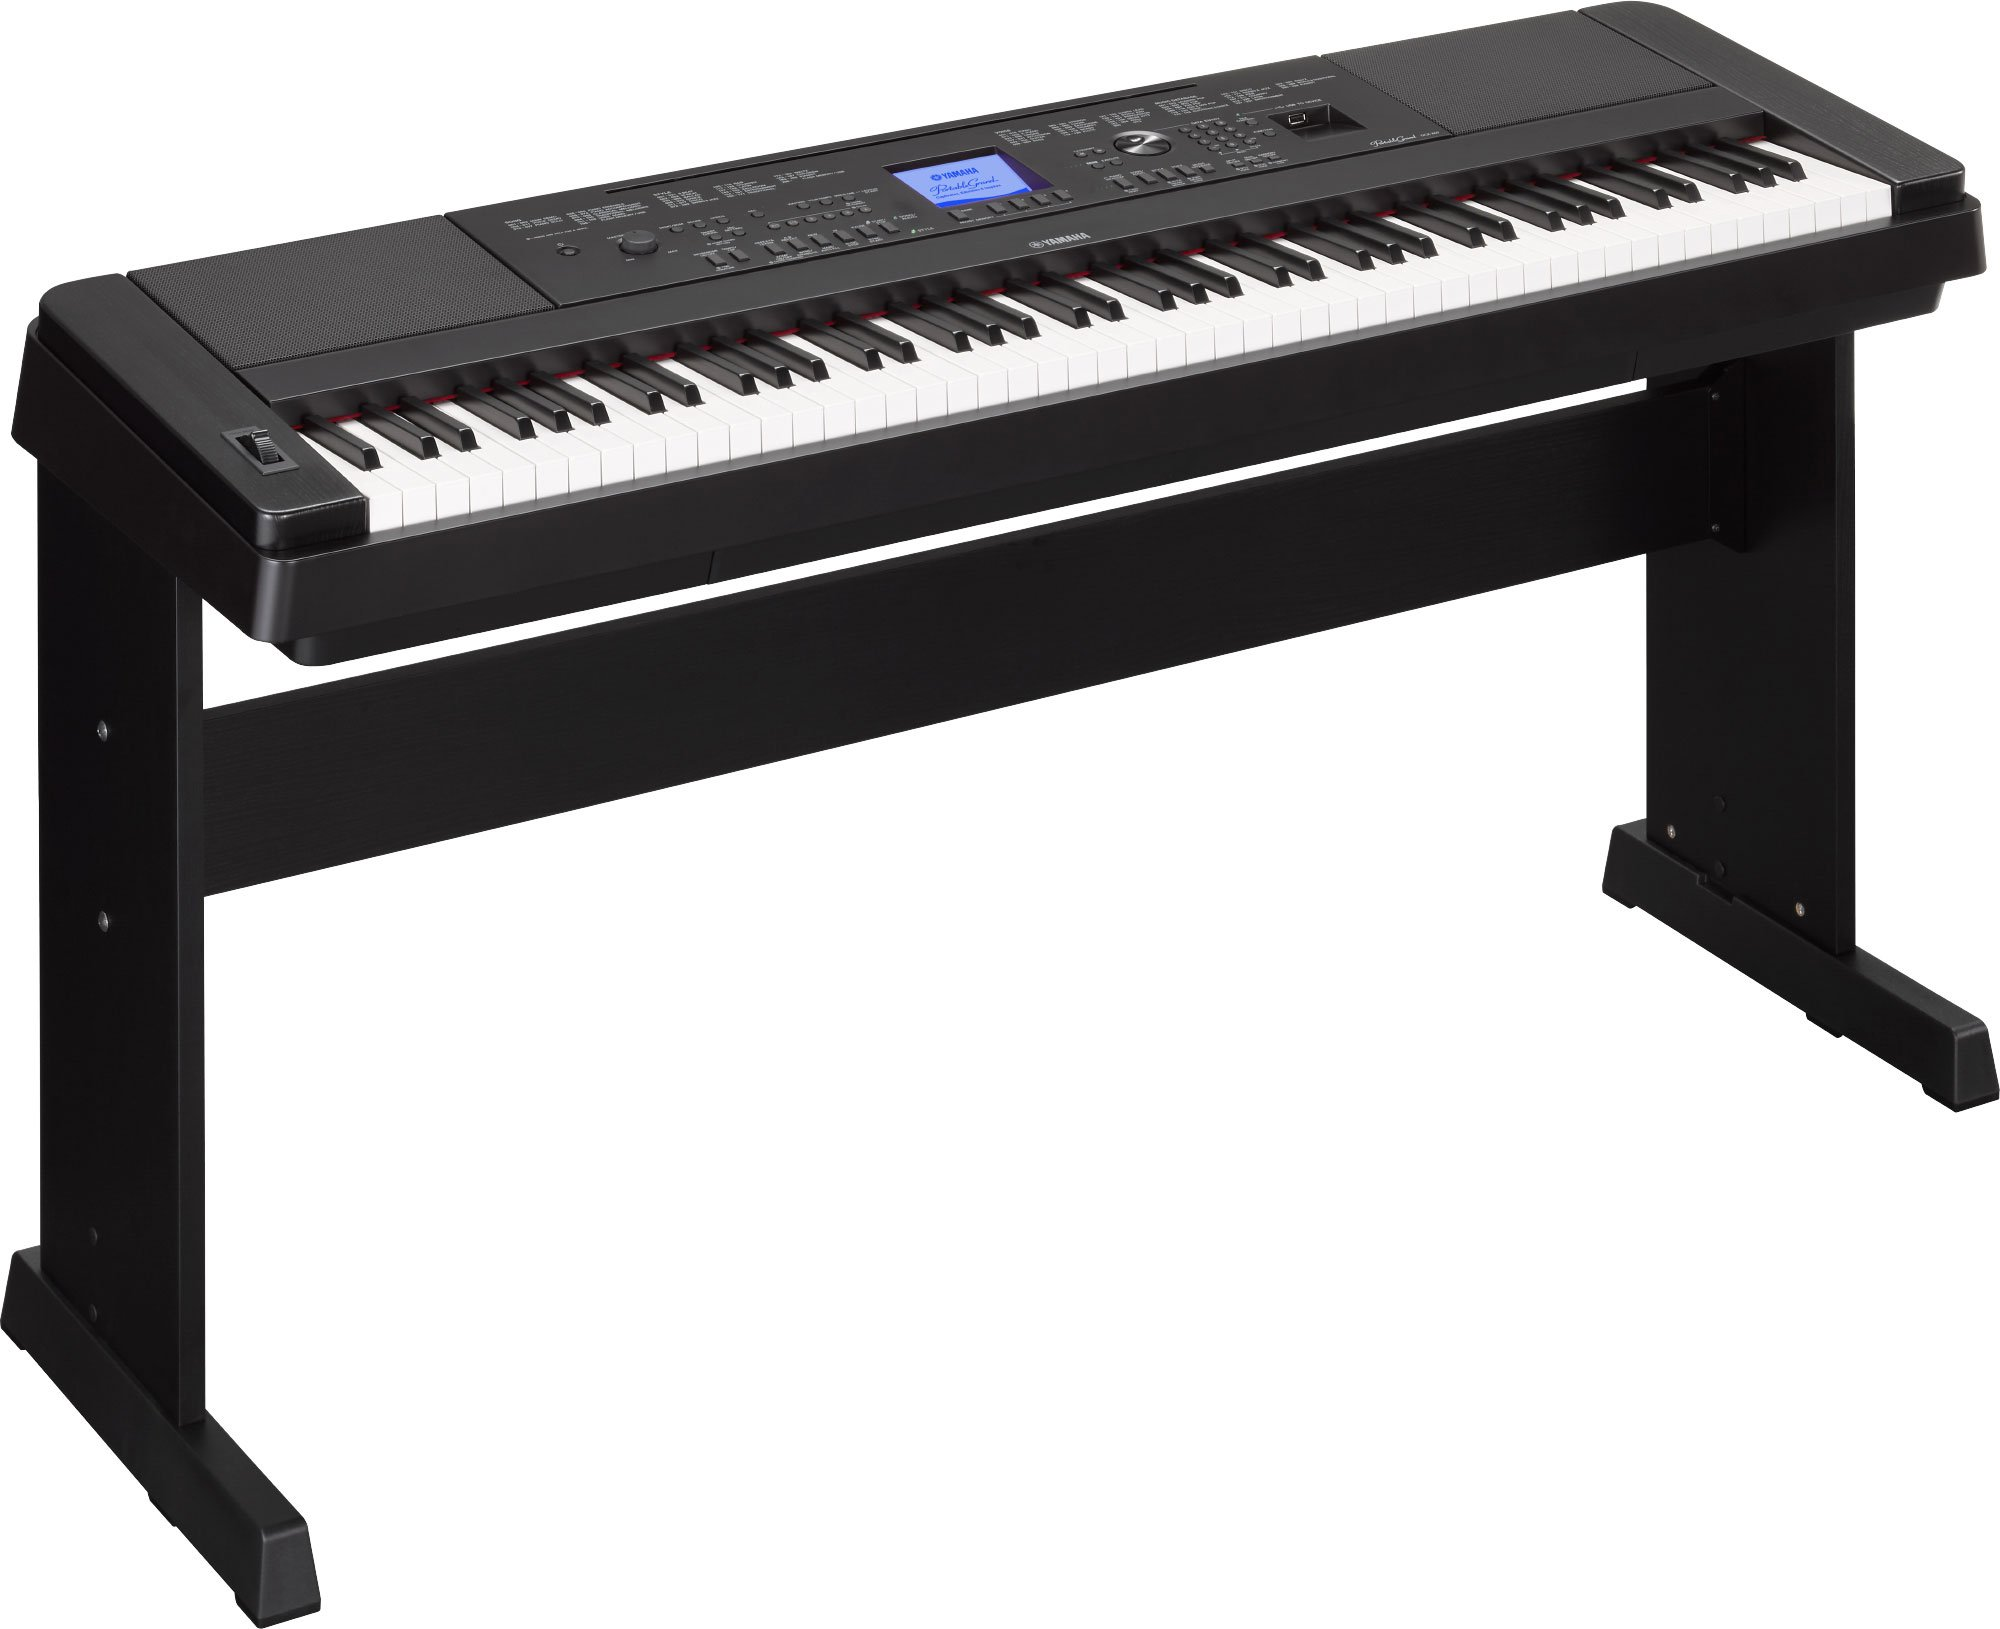 Yamaha Dgx660B 88-Key Weighted Digital Piano With Furniture Stand by YAMAHA